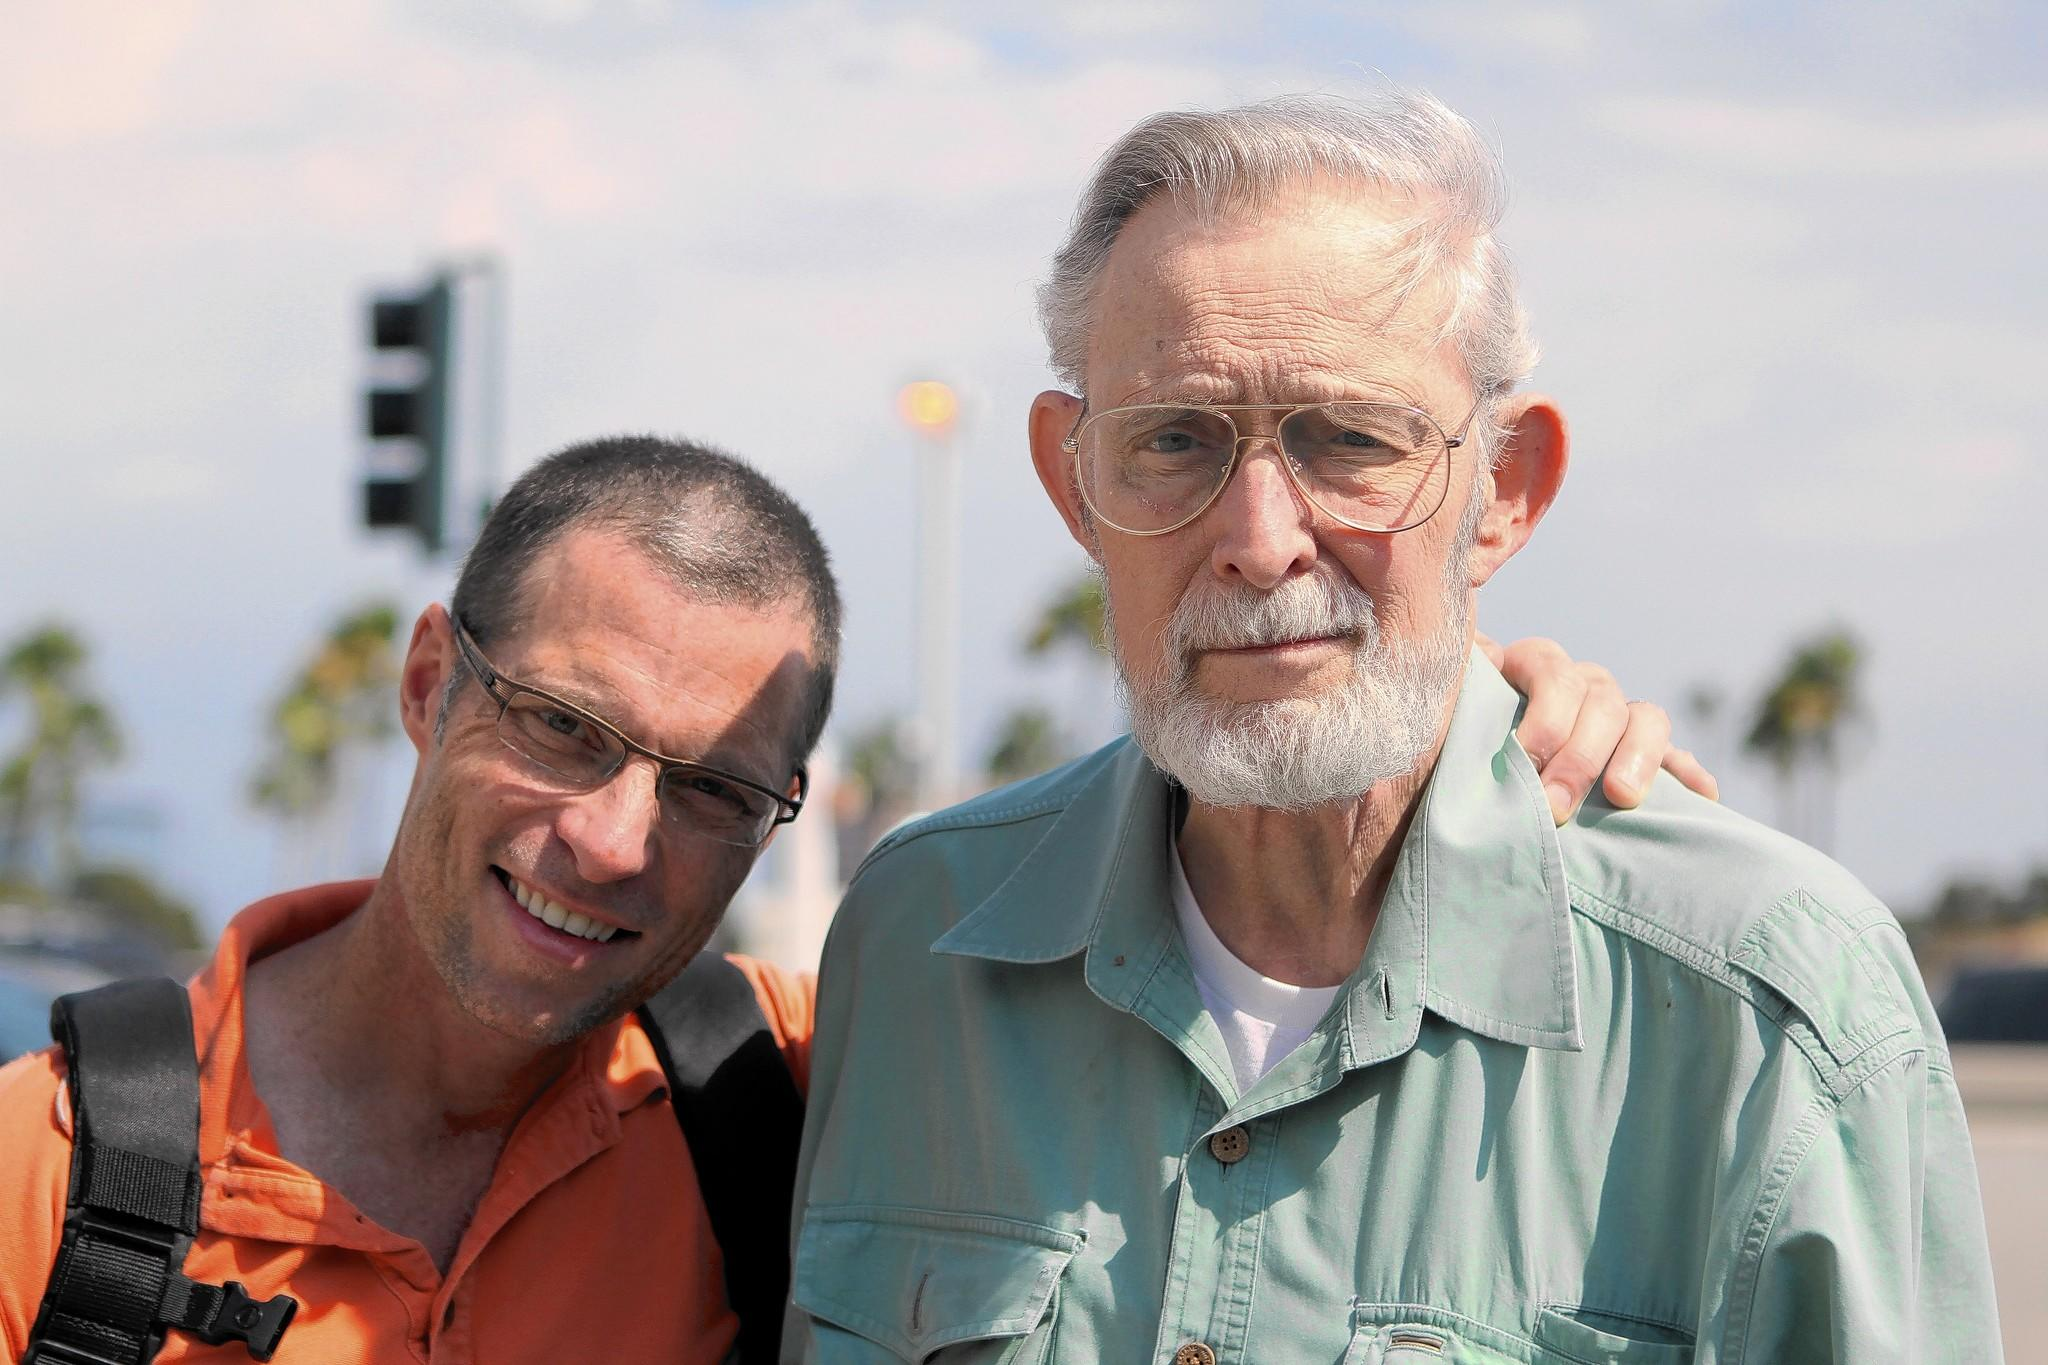 David Stiller, seen here circa 2008 with son Eric, left, died at the age of 78 on Sunday. The longtime Costa Mesa resident and Navy veteran served on a variety of city committees, including one for the senior center and Fairview Park.